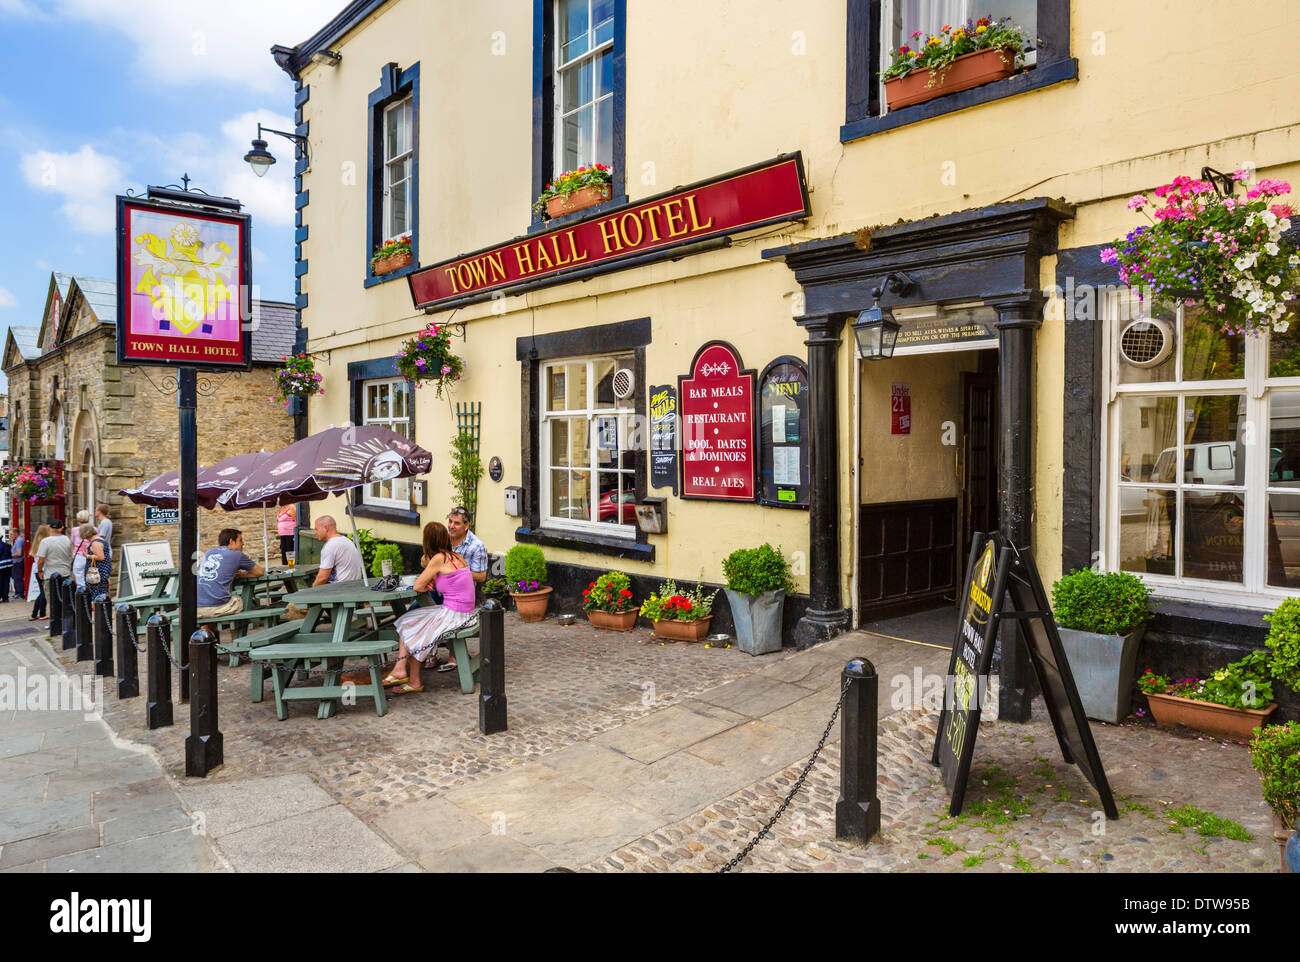 People sitting outside the Town Hall Hotel pub in the historic Market Place, Richmond, North Yorkshire, England, Stock Photo